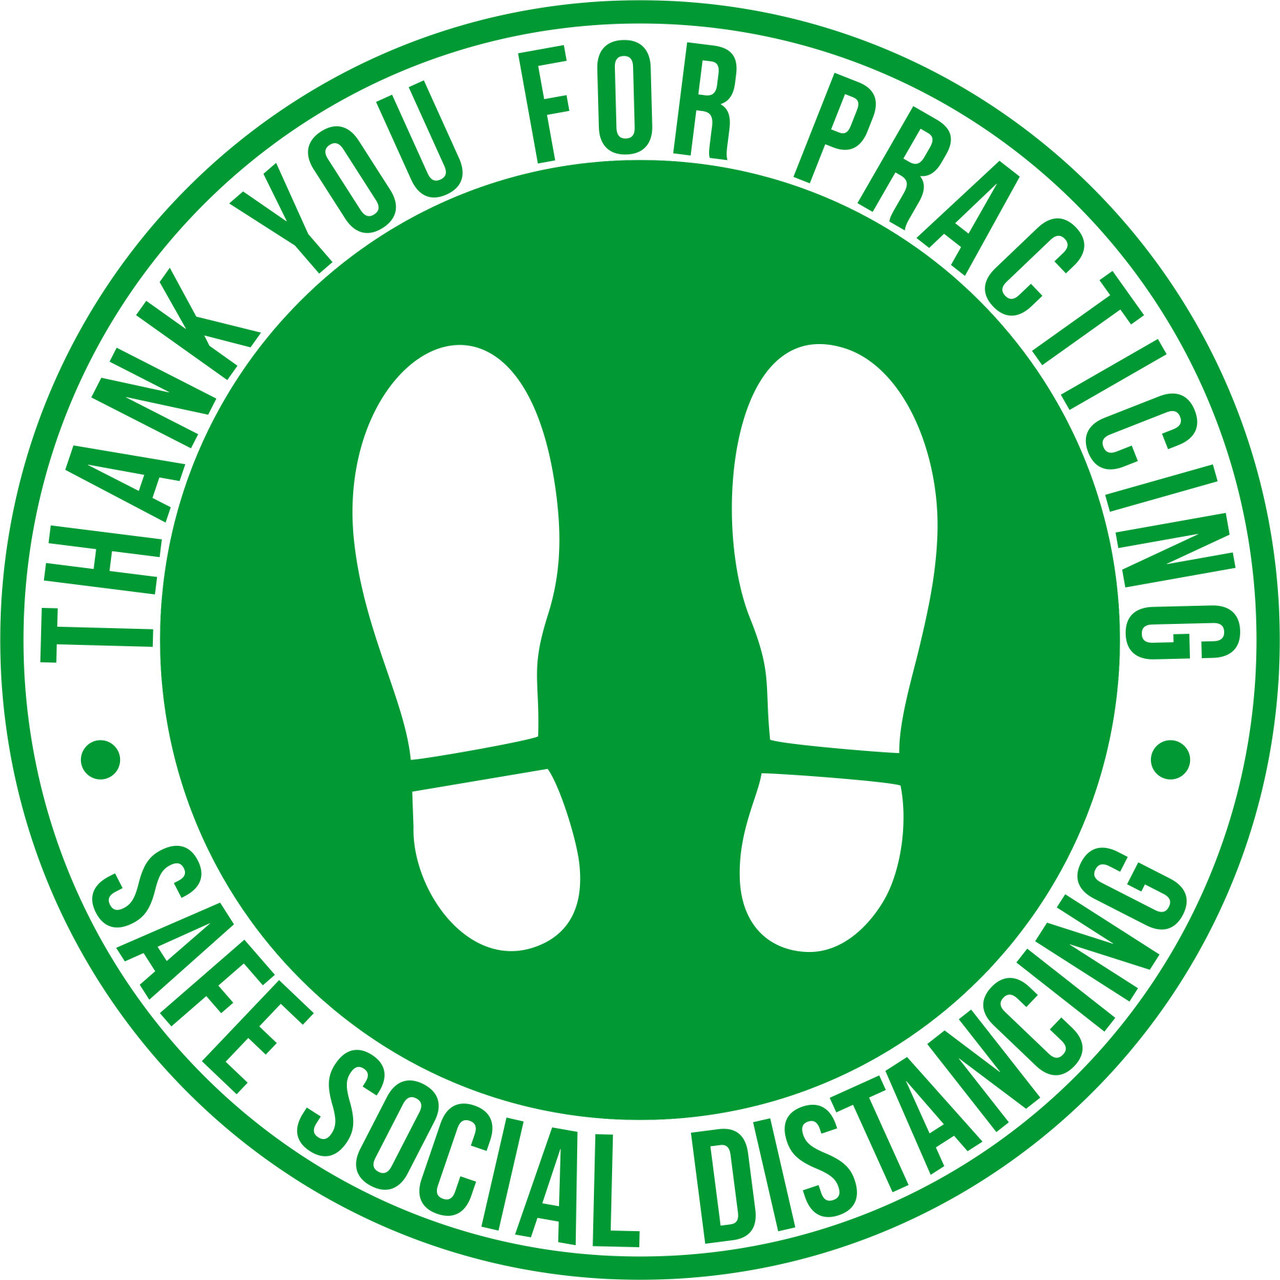 "Green Social Distance Marker Floor Decal | 12"" Round Social Distancing Floor Sticker 